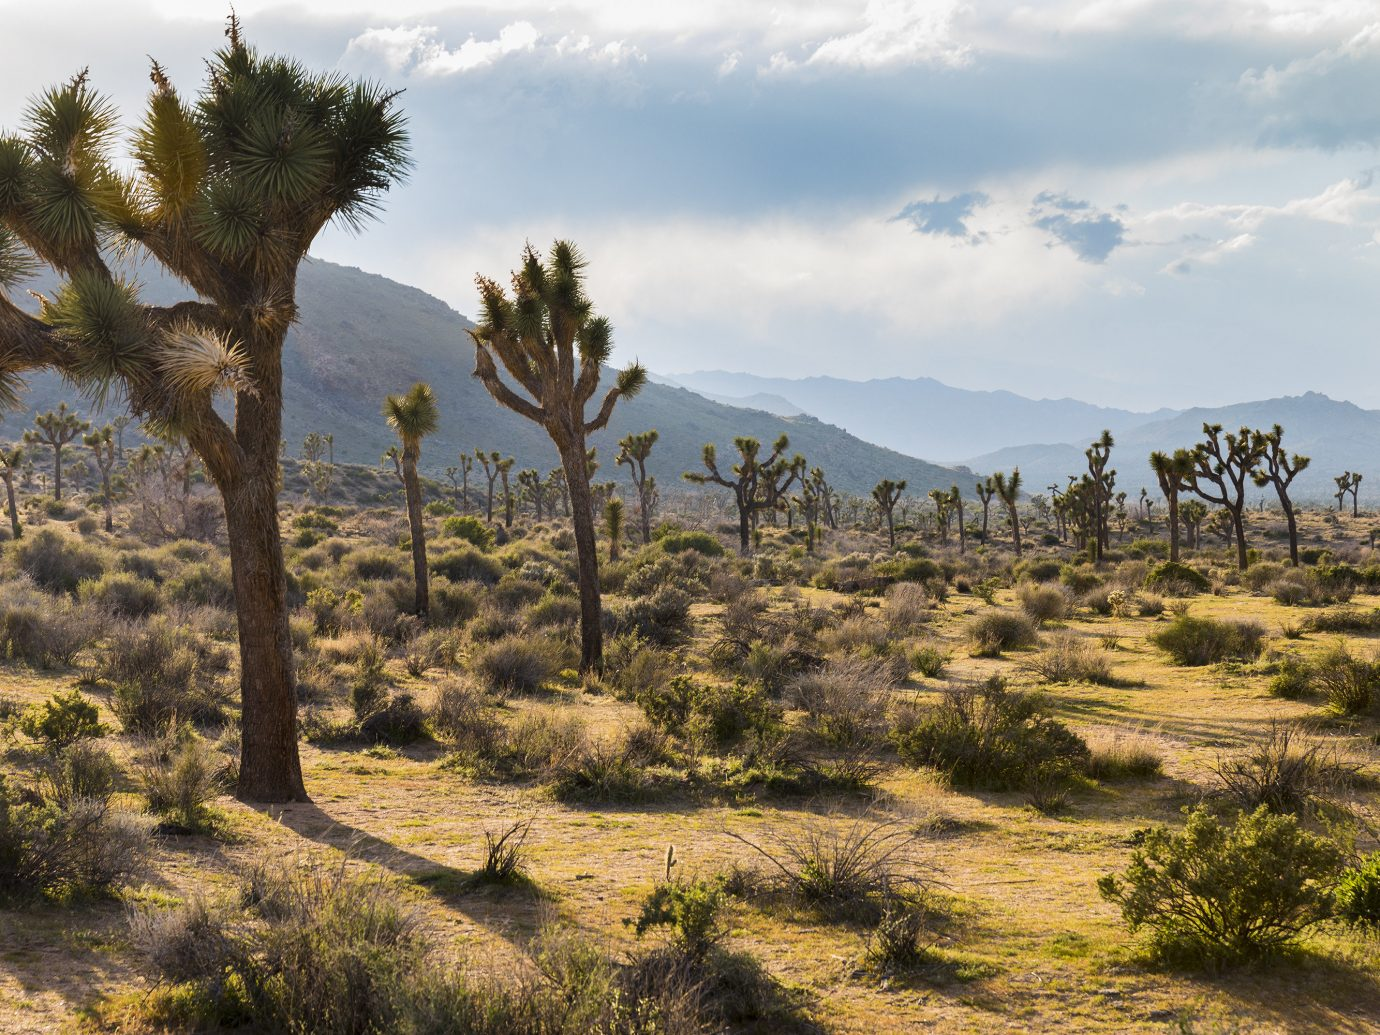 City Influencers + Tastemakers Joshua Tree ecosystem vegetation tree shrubland sky wilderness woody plant arecales palm tree plant plant community landscape savanna ecoregion grassland hill biome mountain grass national park cloud steppe